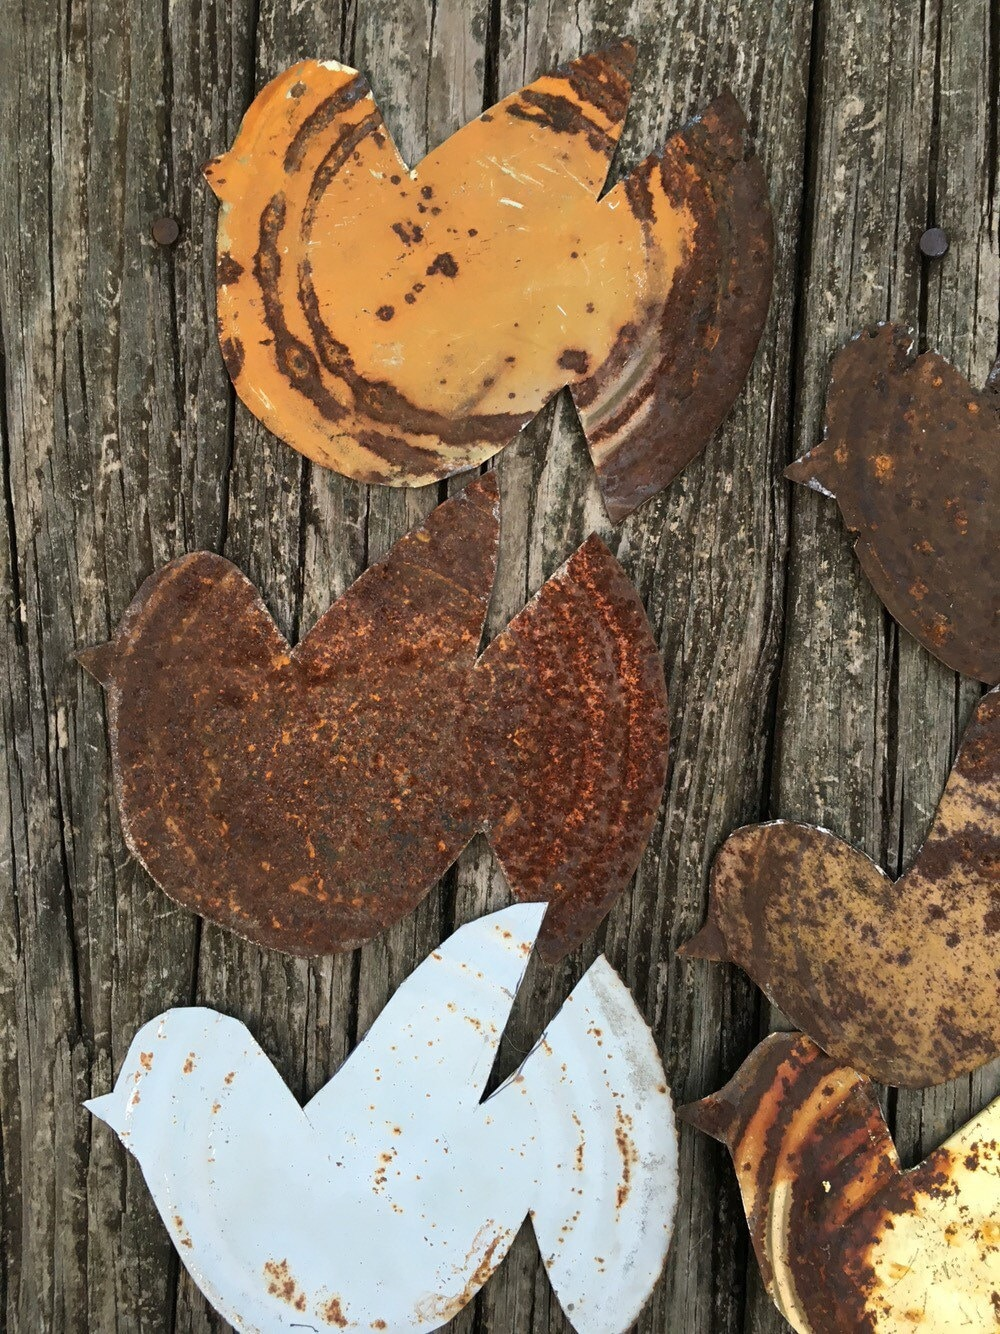 Rusty tin craft supplies - Sold By Chillcrafts